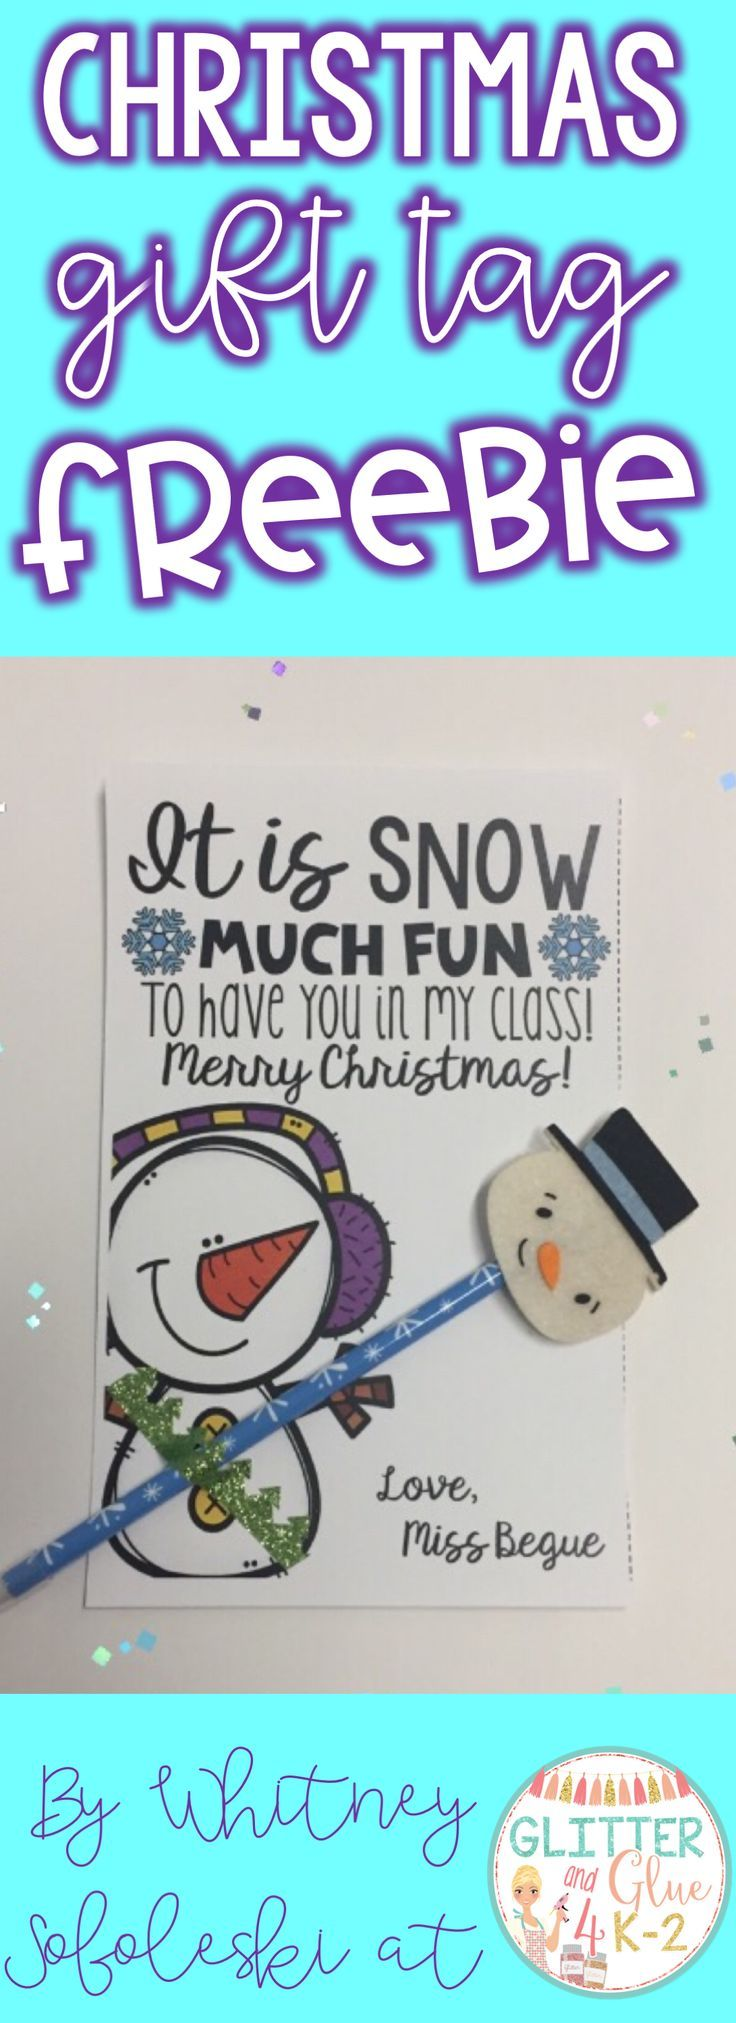 Looking for a cute and easy gift for your little ones during the holidays? Check out these editable gift tags! Keywords: winter themed, snowman theme, elementary teachers, holiday gifts, free gifts, freebies, TpT, printables, Christmas gifts for students, kindergarten, first grade, second grade, gift tags for students